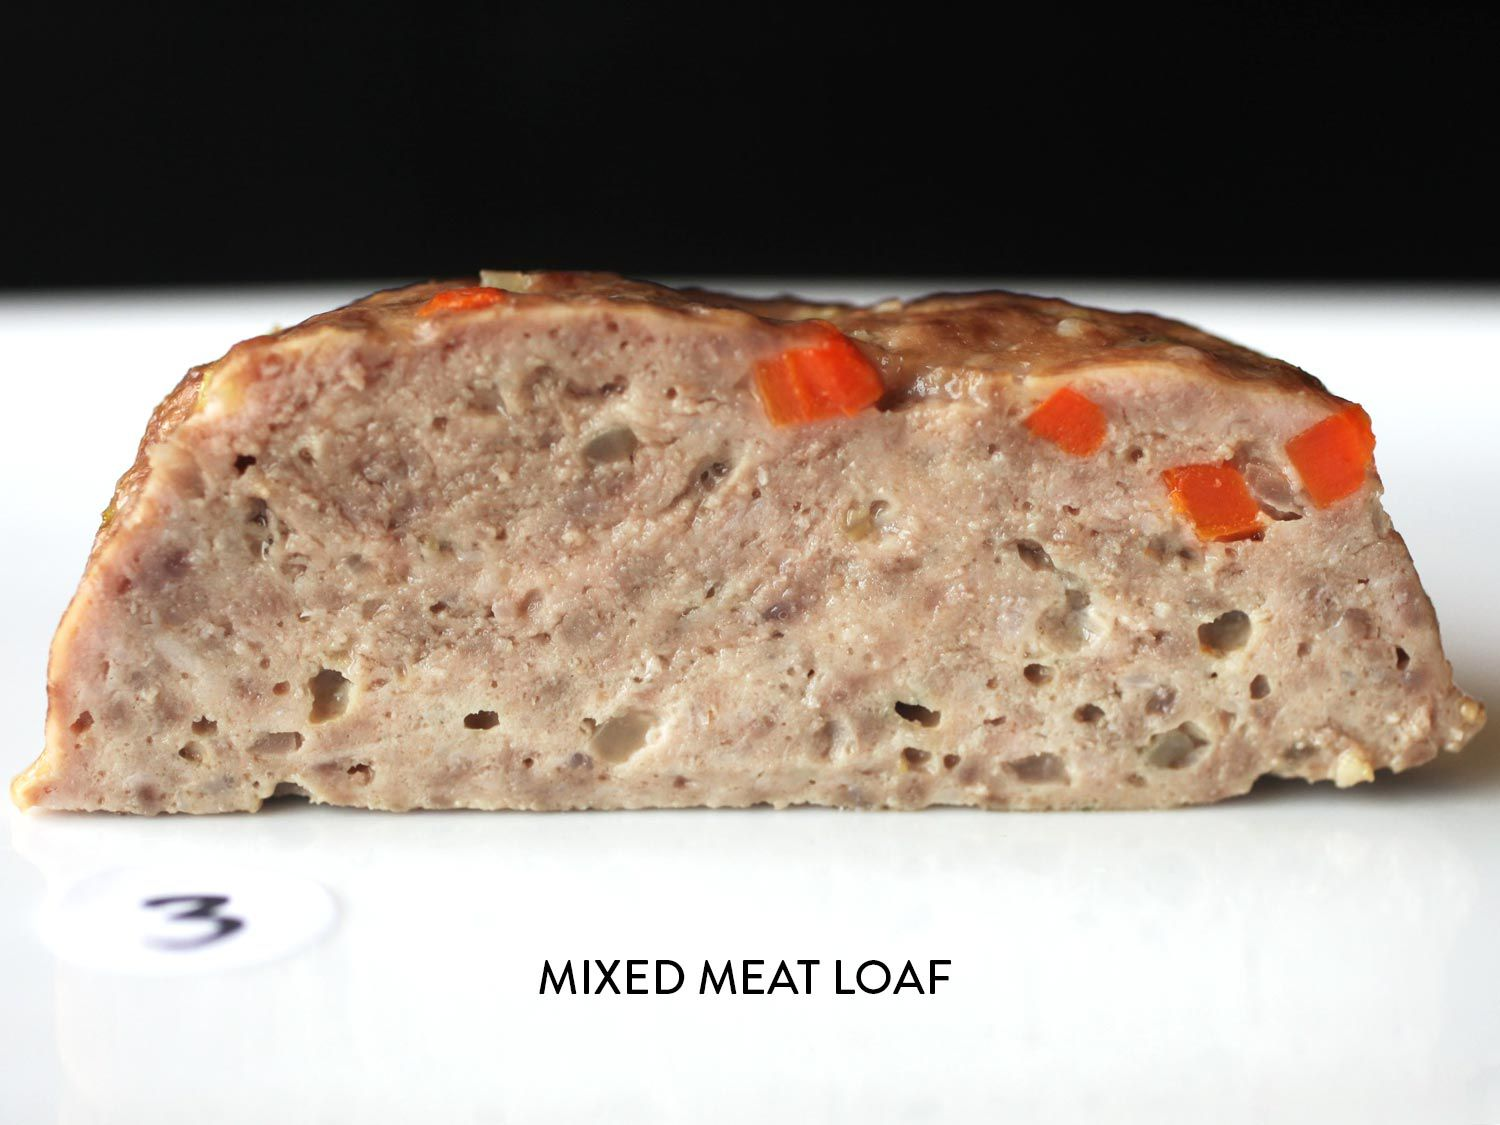 A cross-section meatloaf made with mixed meat